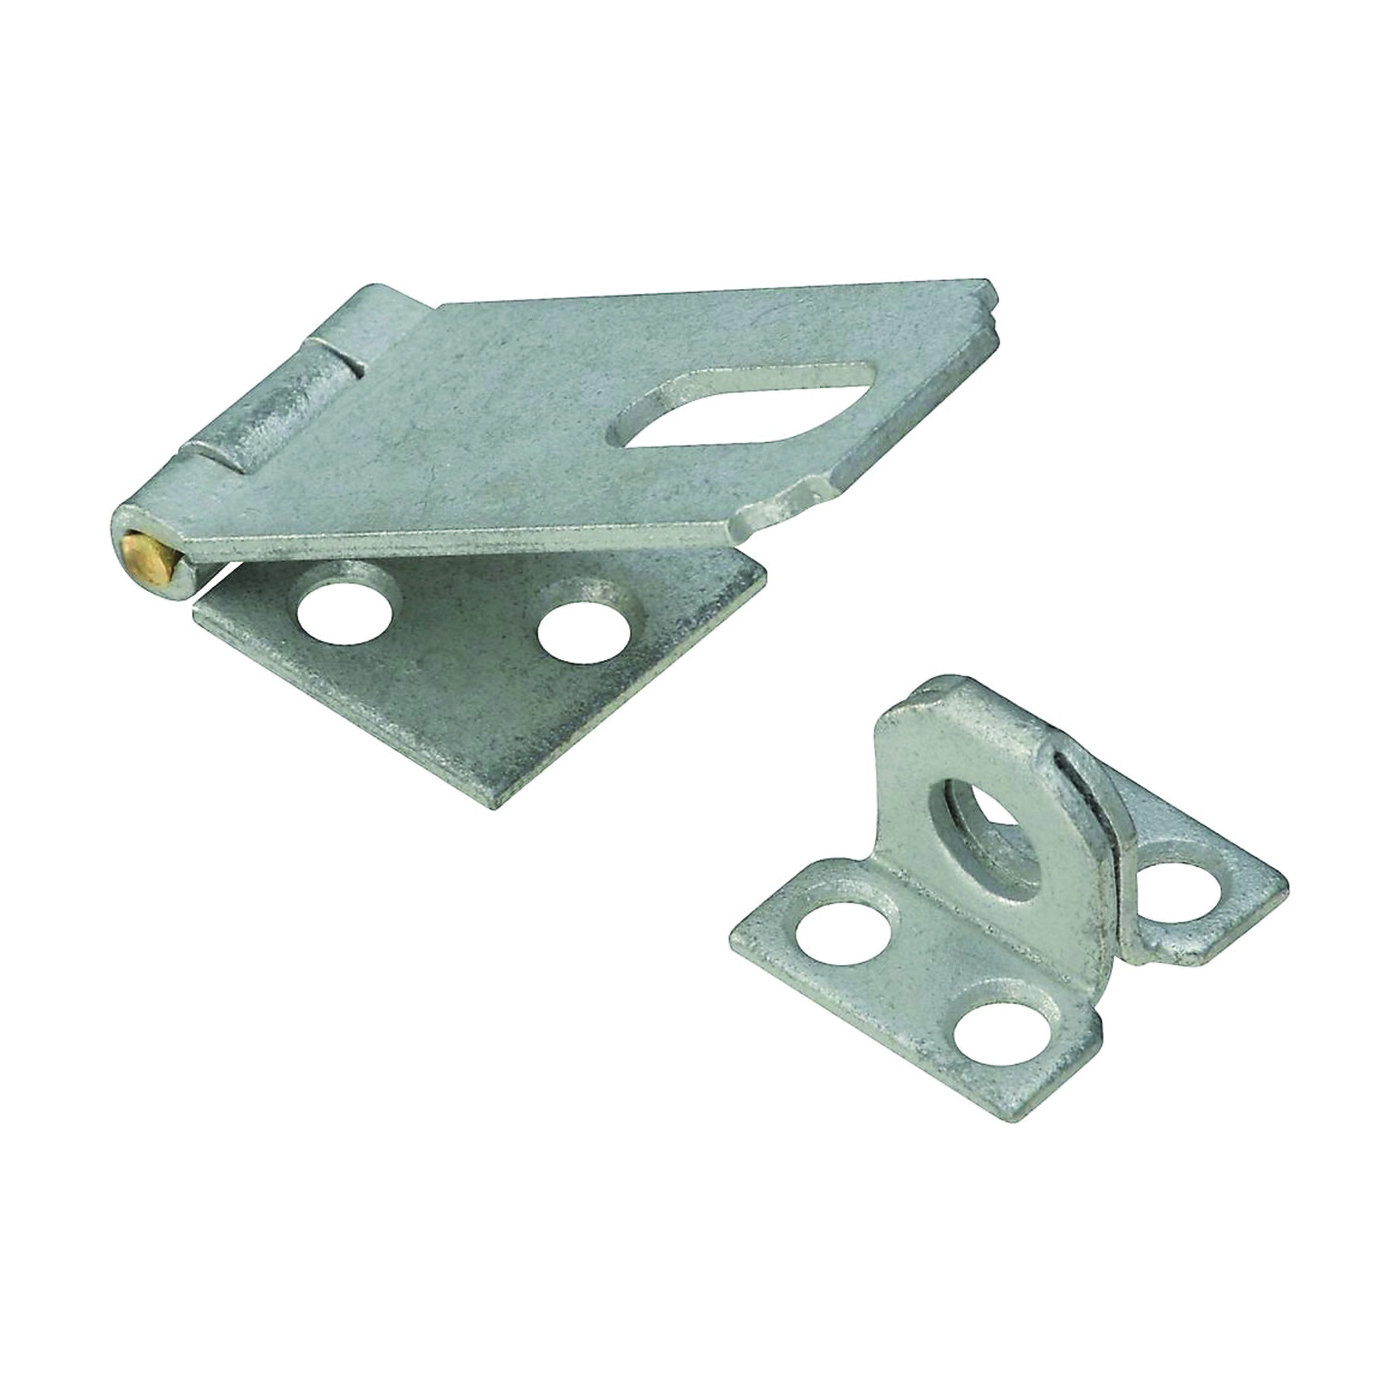 Picture of National Hardware V30 Series N102-723 Safety Hasp, 2-1/2 in L, Galvanized Steel, Non-Swivel Staple